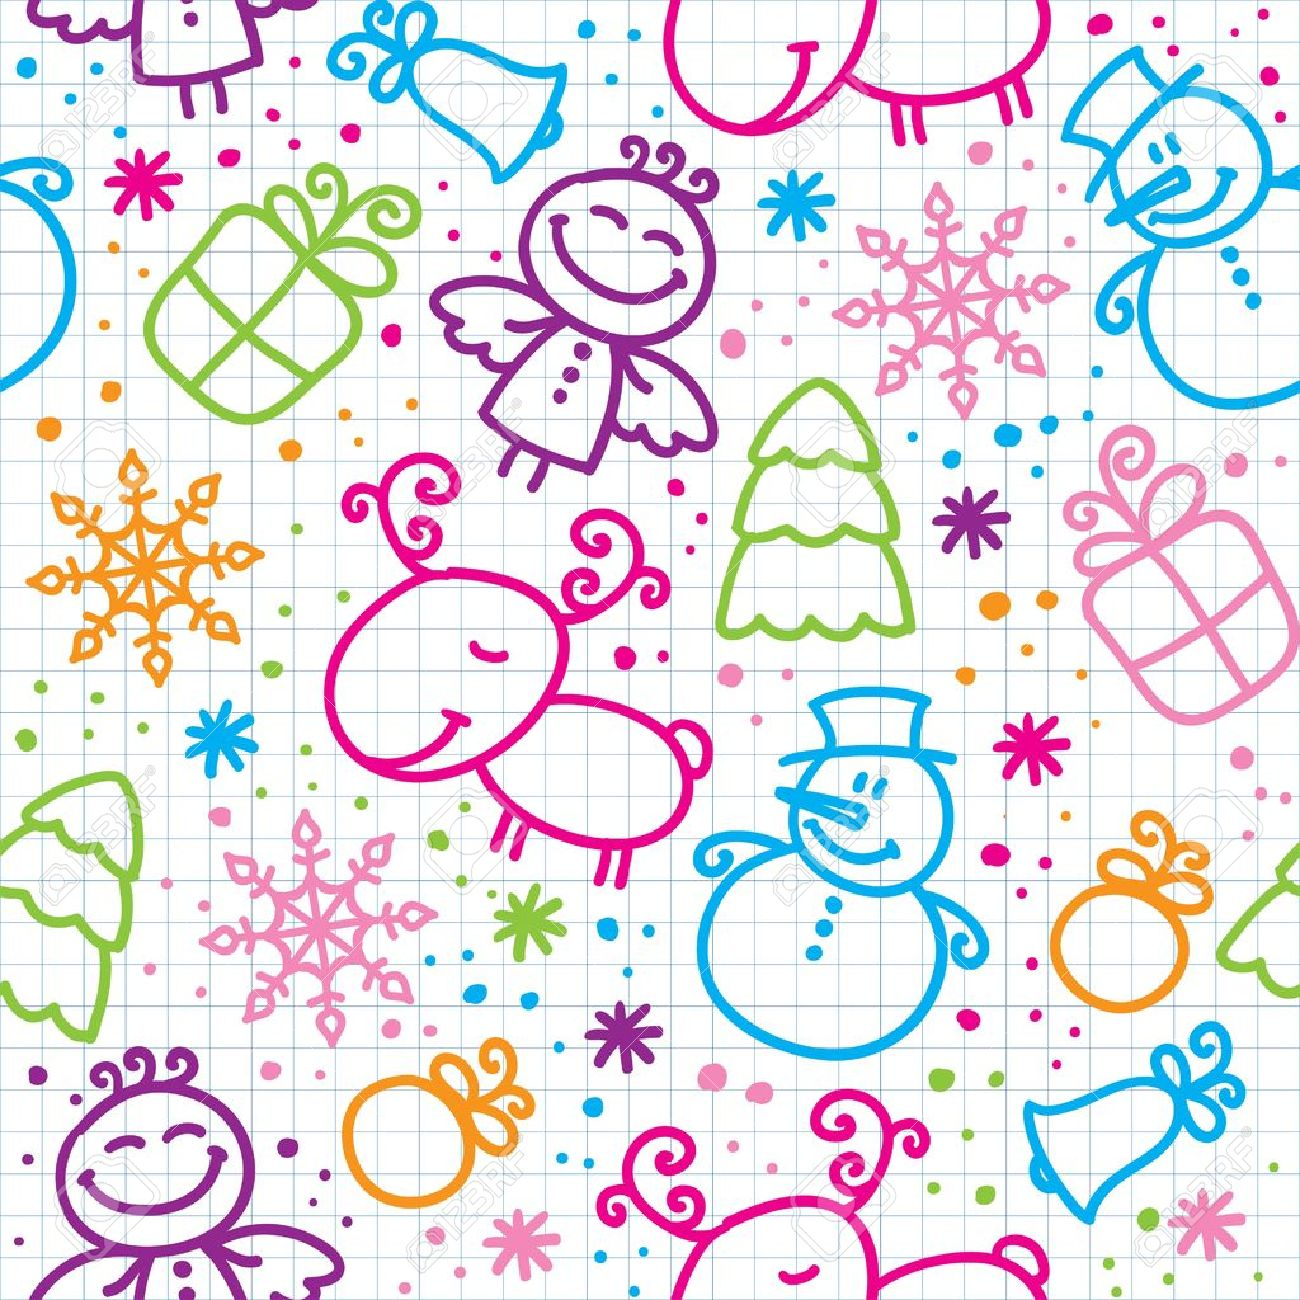 6 845 simple christmas tree icon stock illustrations cliparts and